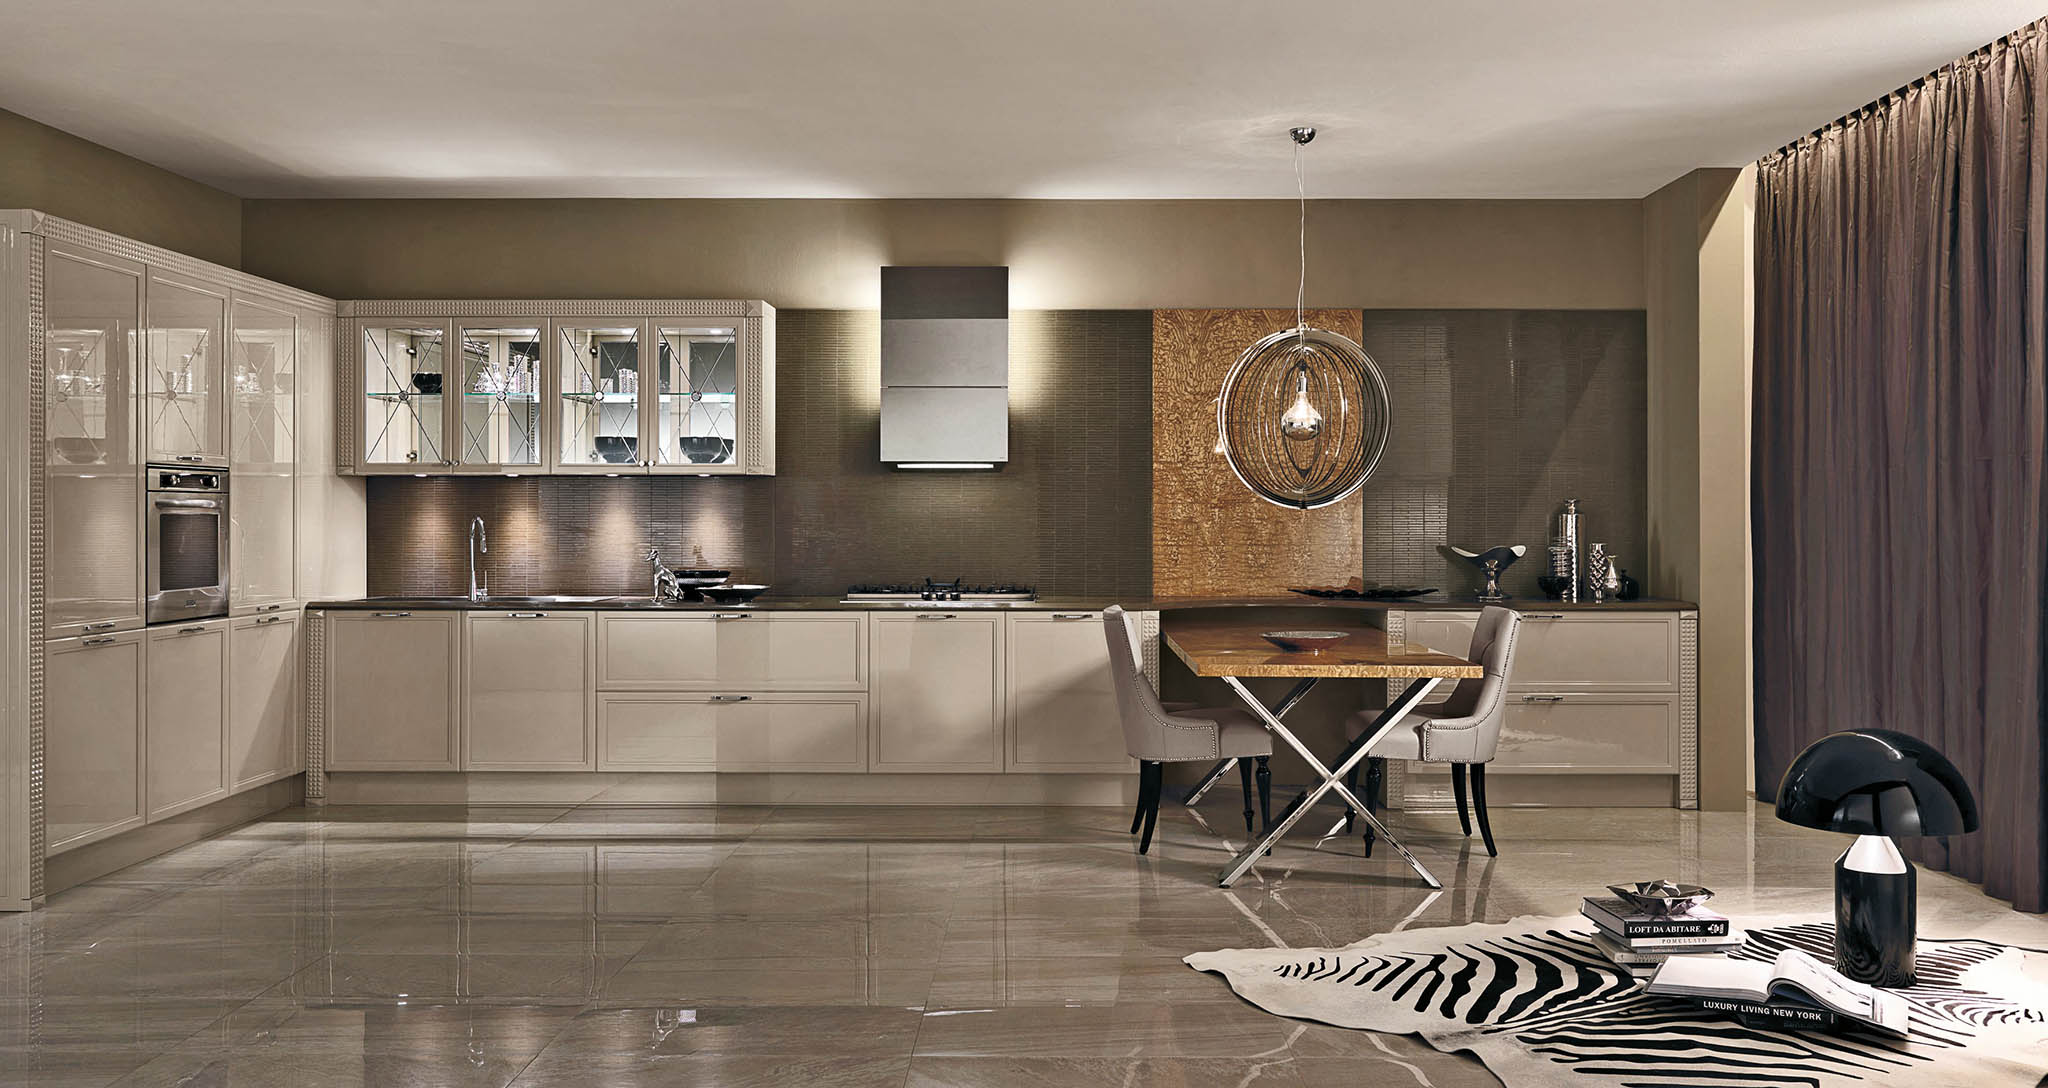 Кухня Luxury 02 Glam фабрика Aster cucine